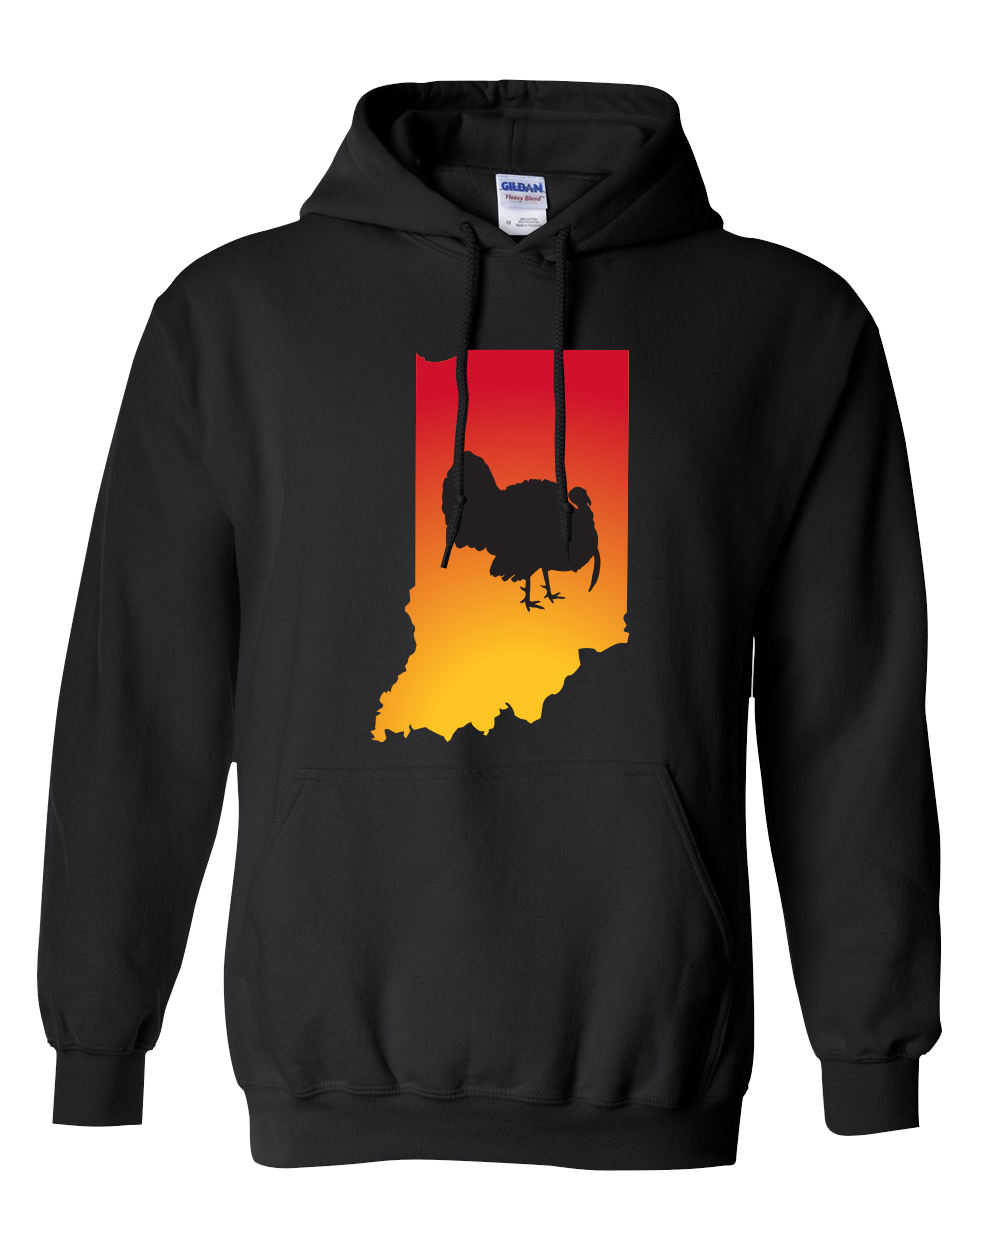 Pullover Hooded Sweatshirt Indiana Black Turkey Vibrant Design High Quality Tight Knit Ring Spun Low Maintenance Cotton Printed With The Newest Available Color Transfer Technology